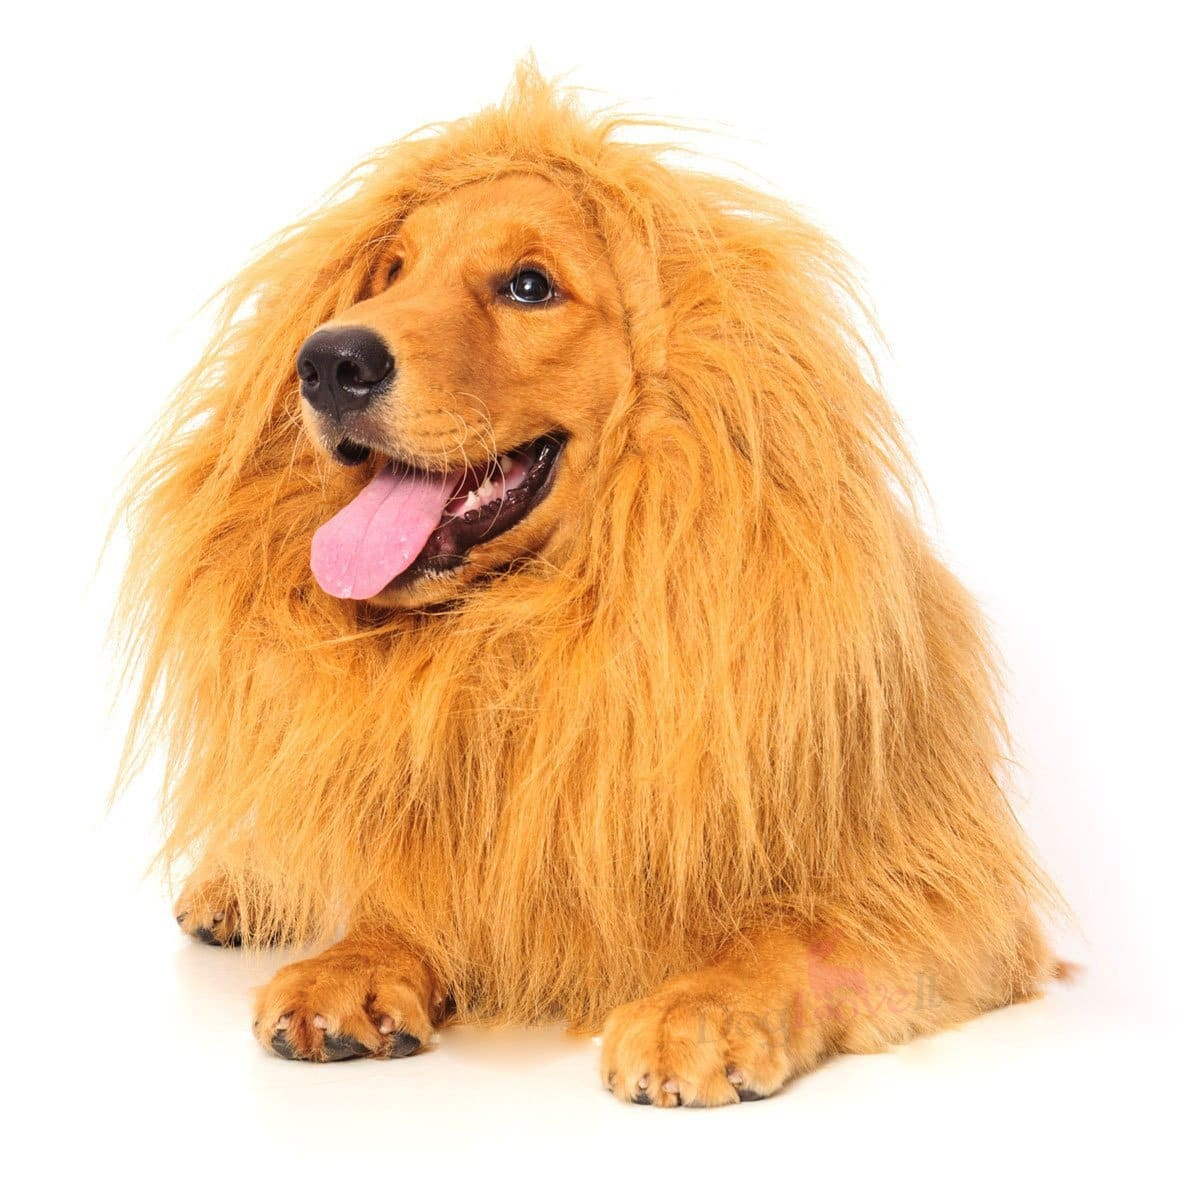 Dogloveit Dog Costume - Lion Mane/Lion Wig for Dog with Gift (Lion Tail) $6.99